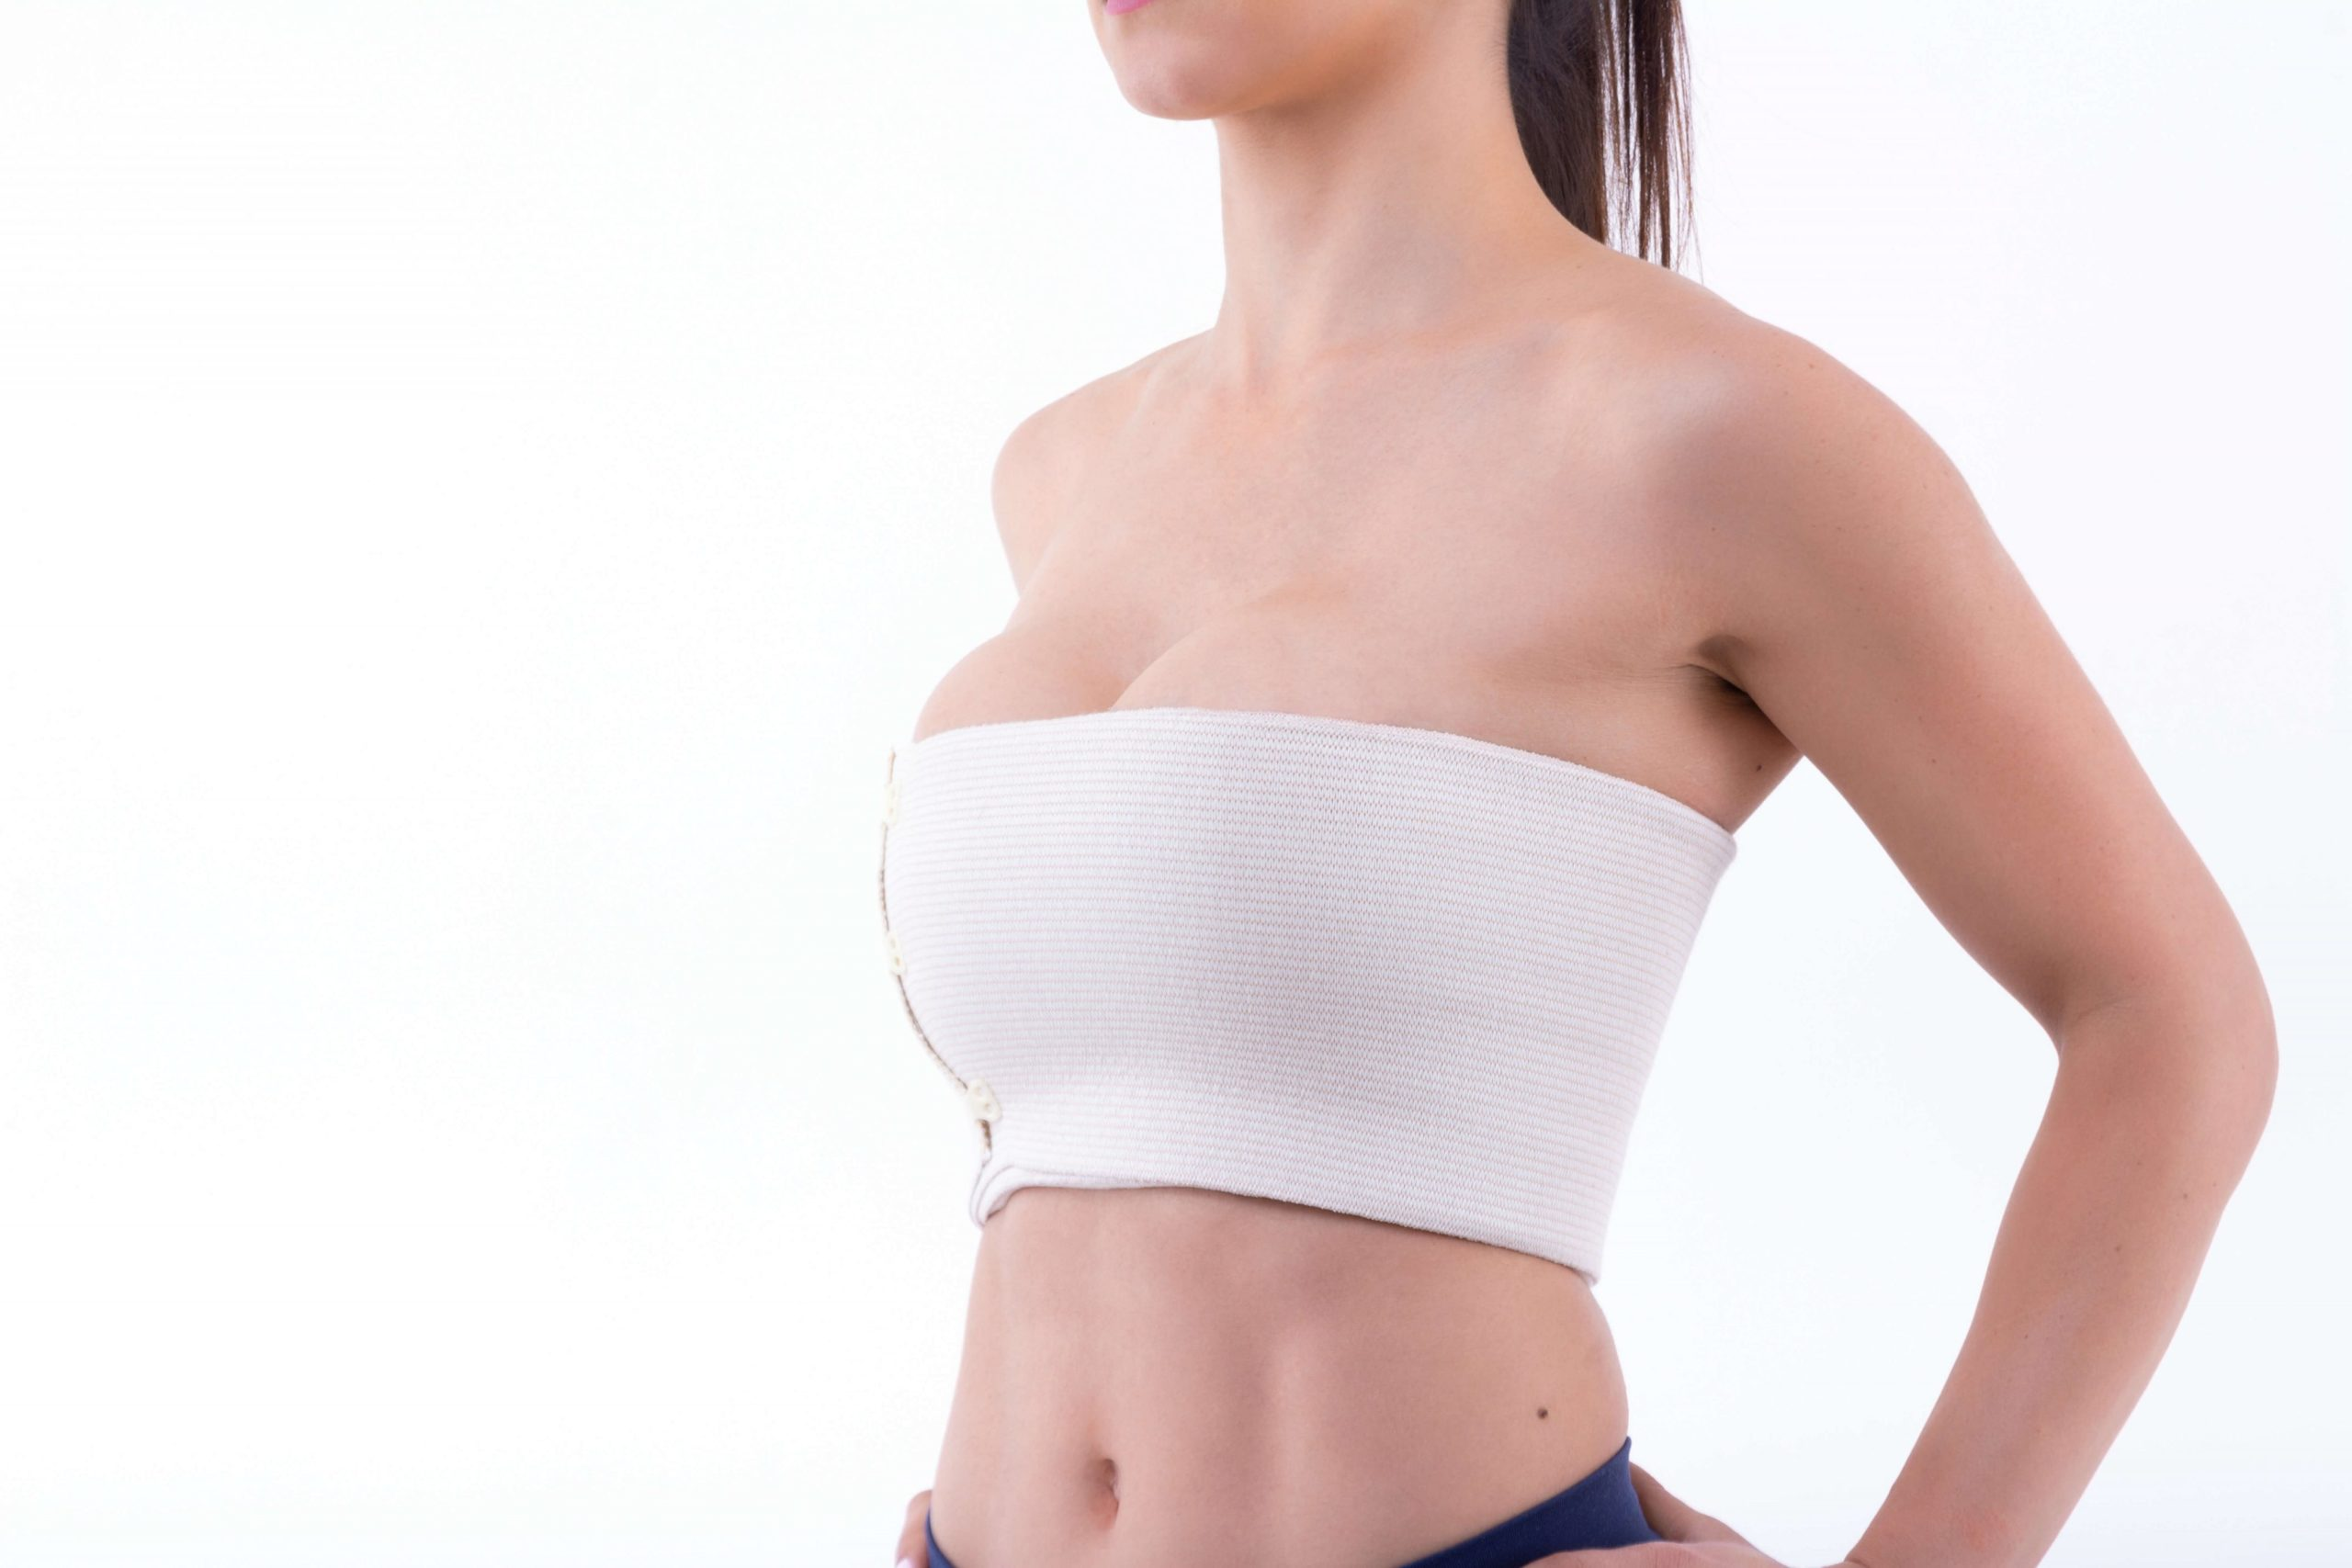 woman after breast augmentation procedure scaled